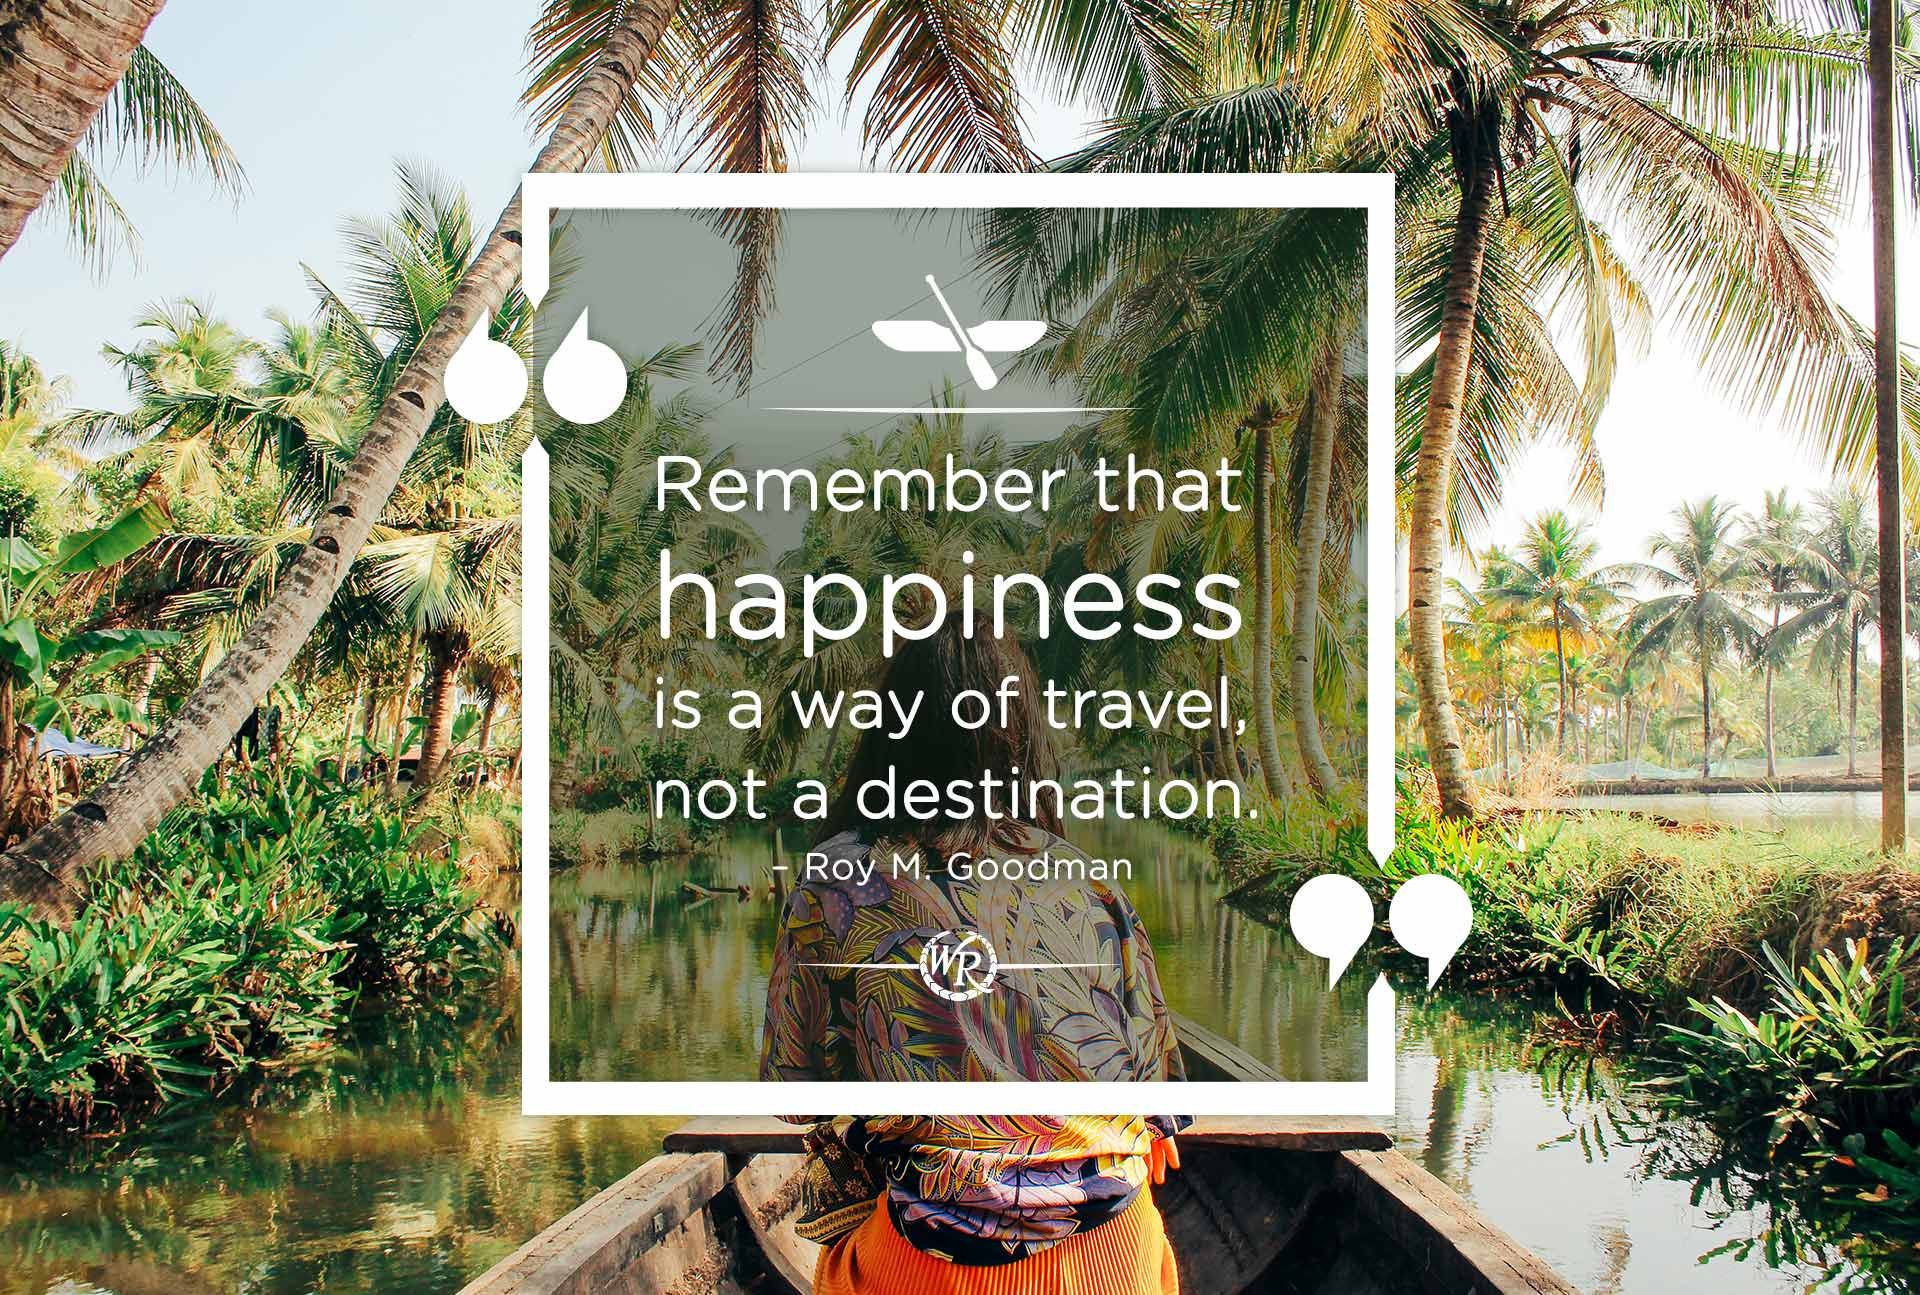 Remember that happiness is a way of travel – not a destination. -Roy M. Goodman | Motivational Travel Quotes